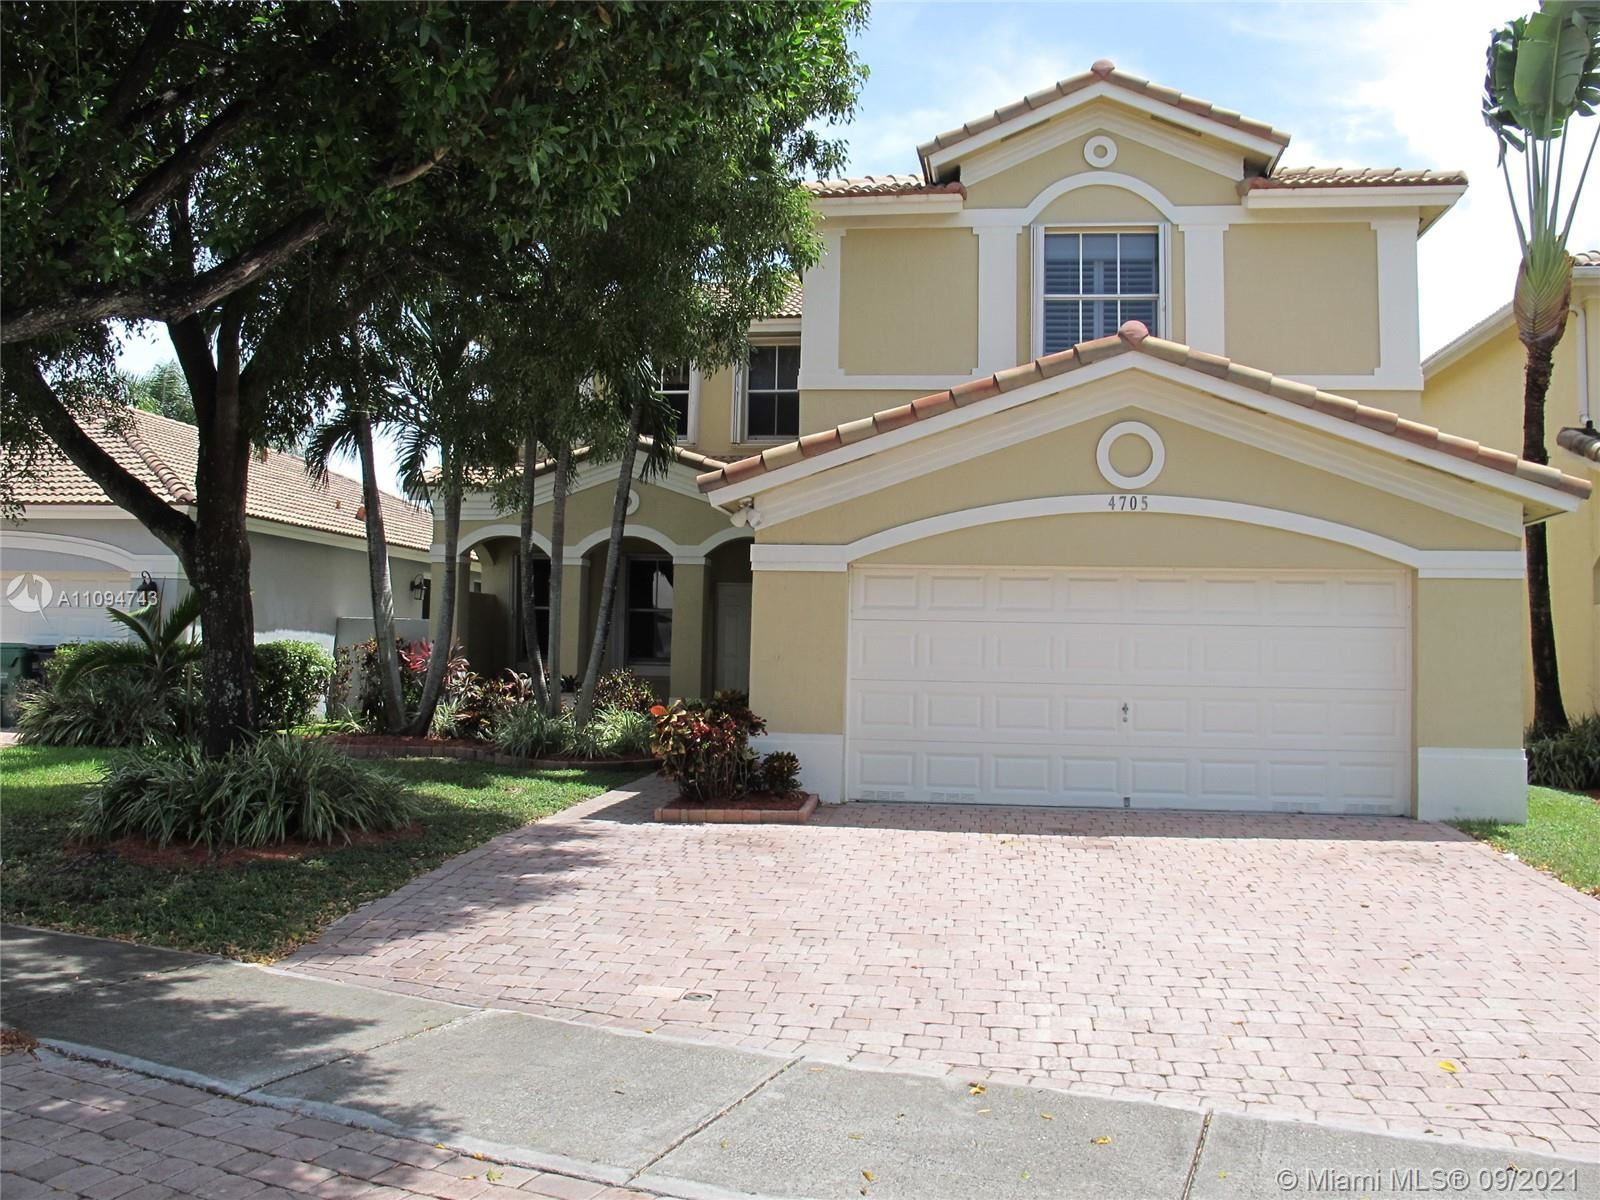 4705 NW 95th Ave, Doral, FL 33178 - #: A11094743